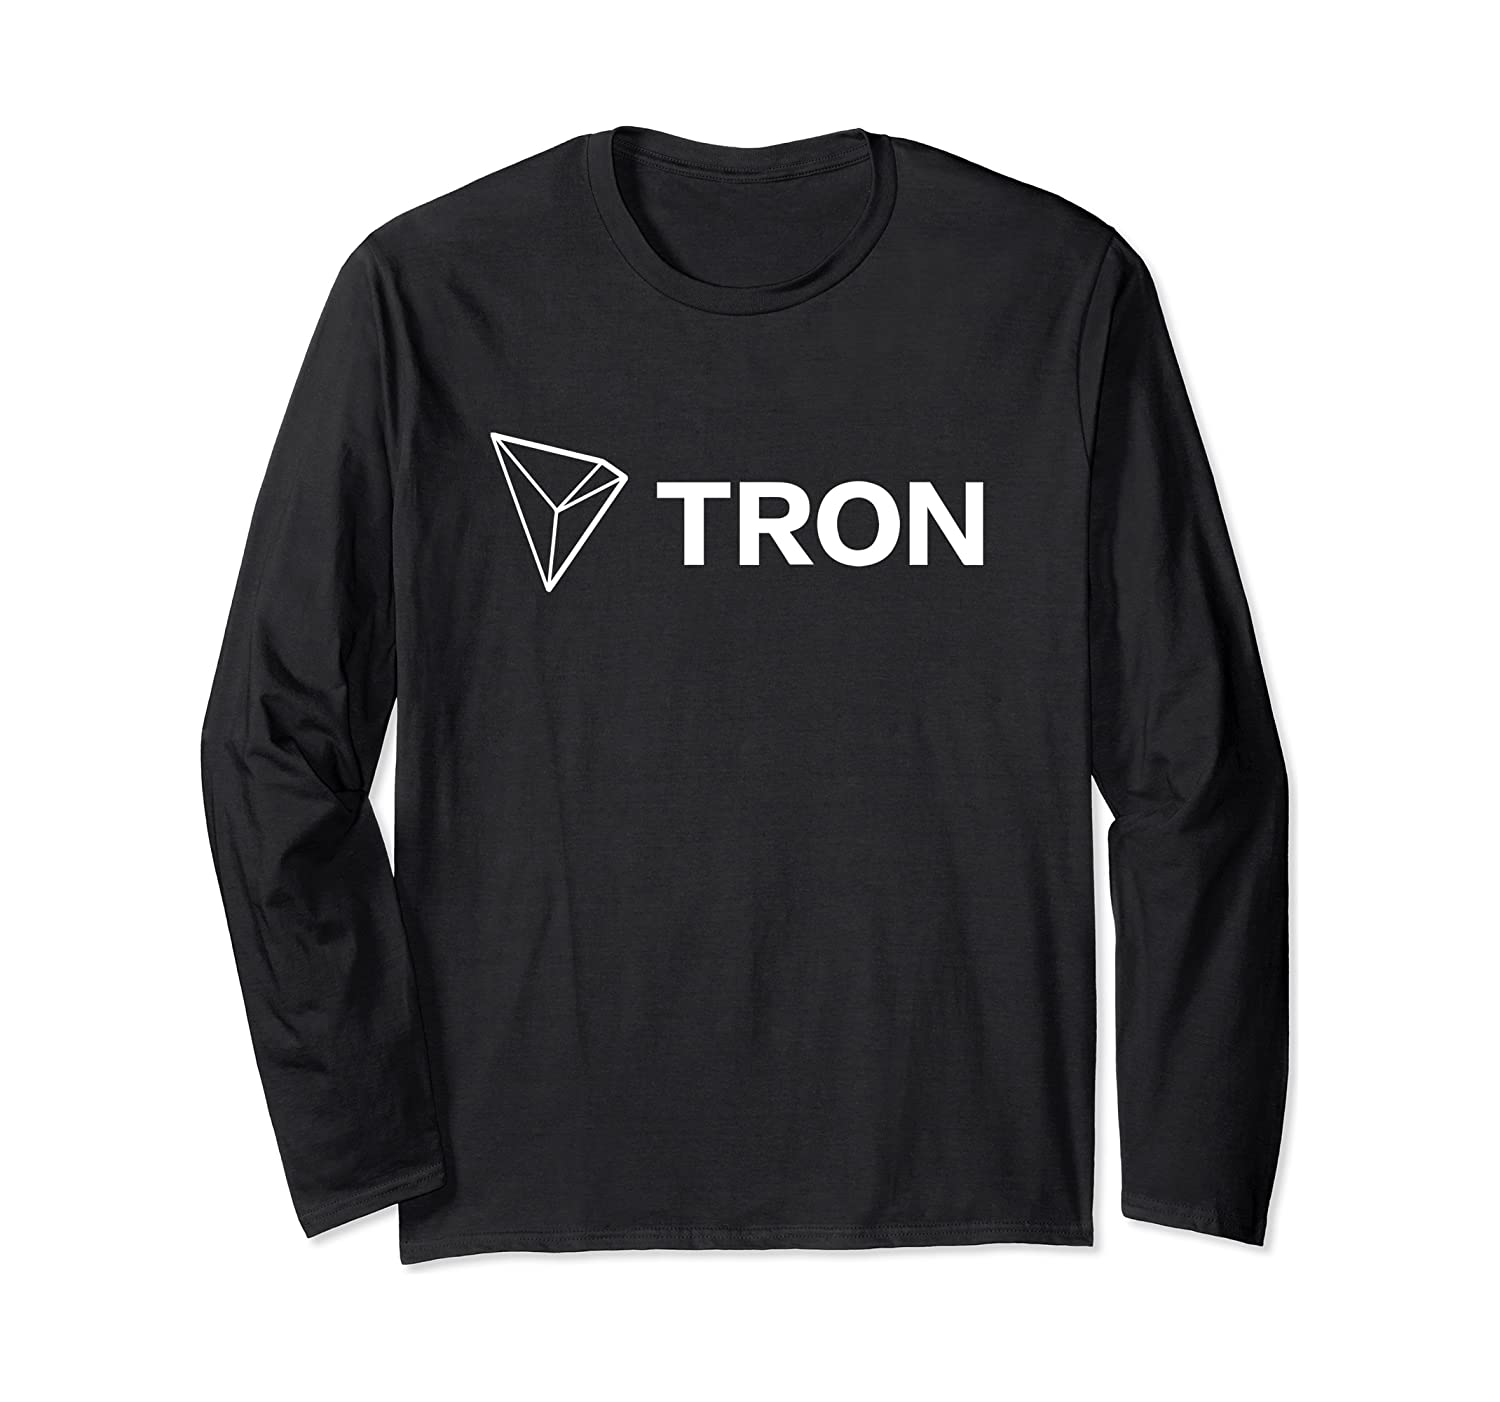 Tron Cryptocurrency Long Sleeve T Shirt - TRX